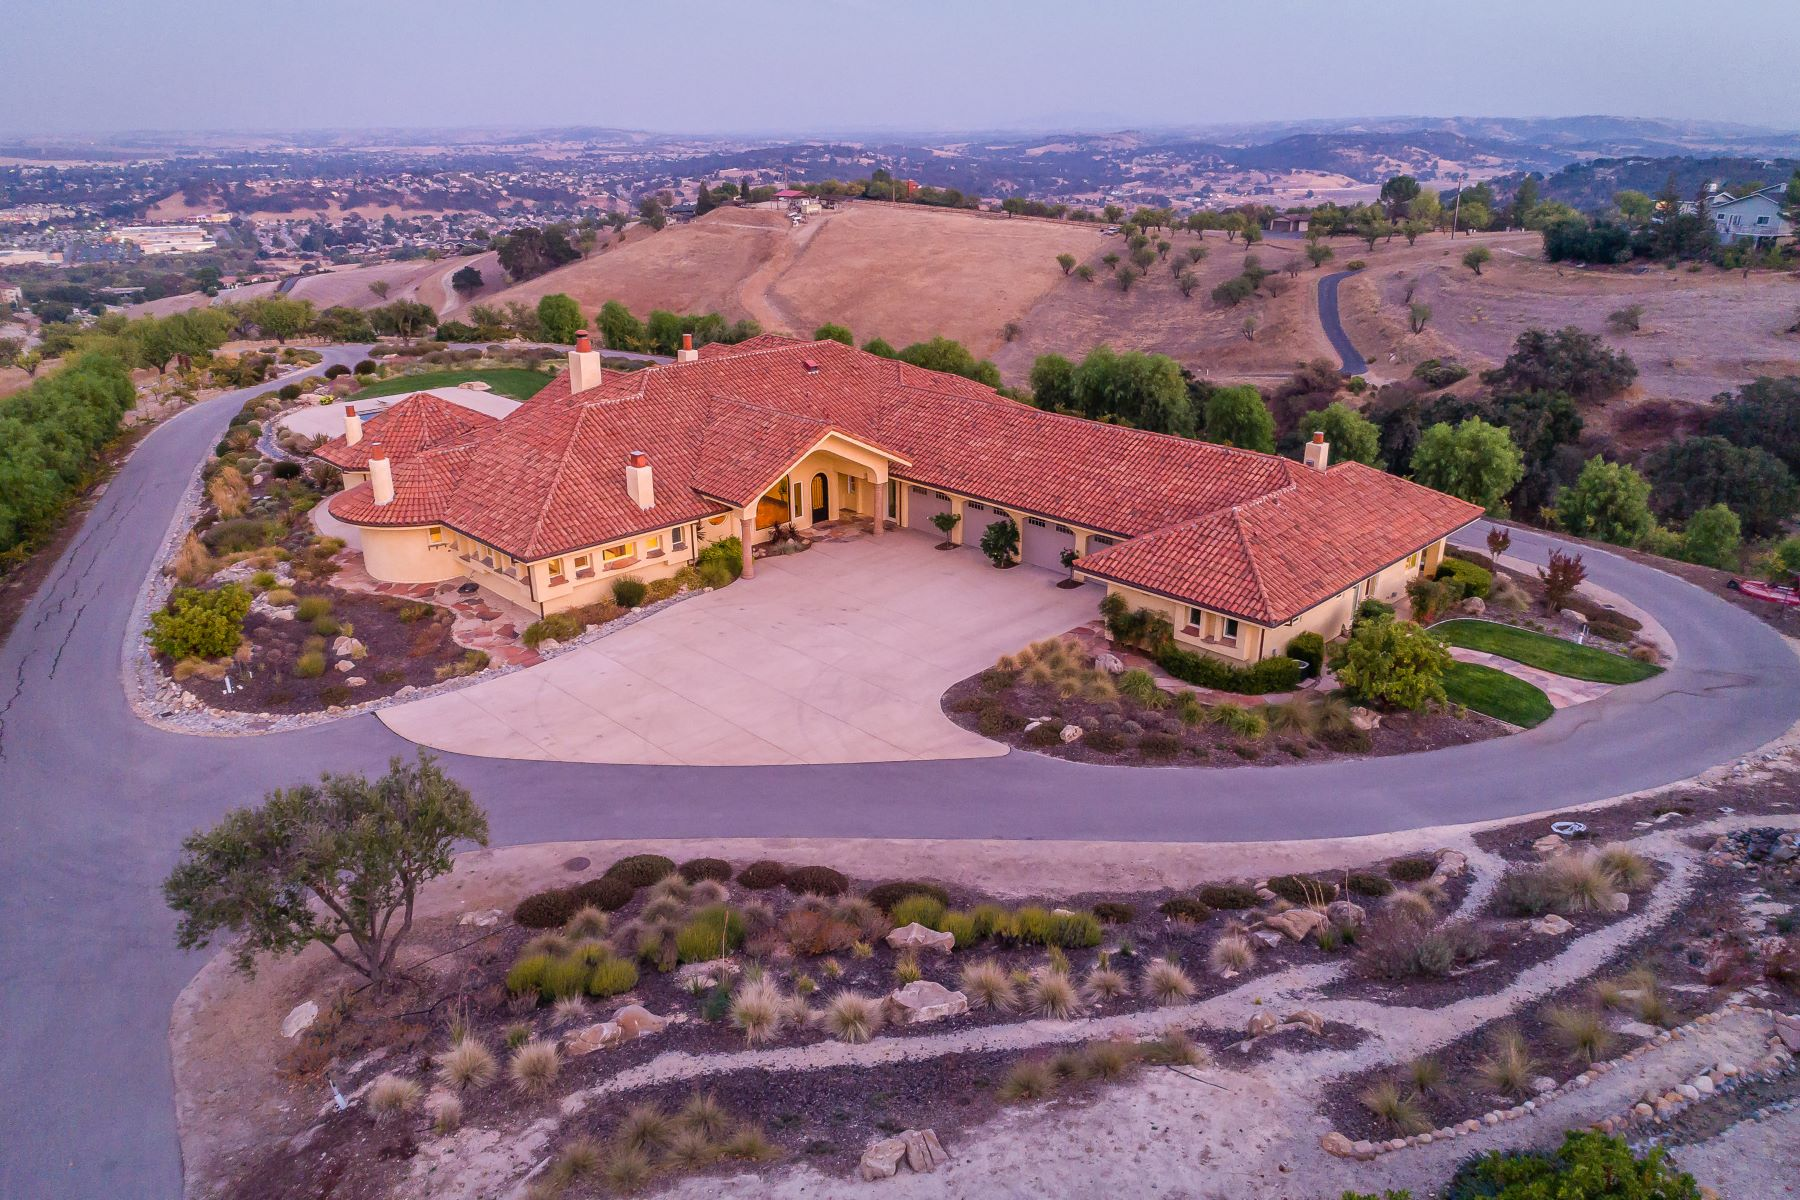 獨棟家庭住宅 為 出售 在 UNIQUE & PRIVATE HOME ON 10± ACRES 515 Calle Almendra Road Paso Robles, 加利福尼亞州 93446 美國